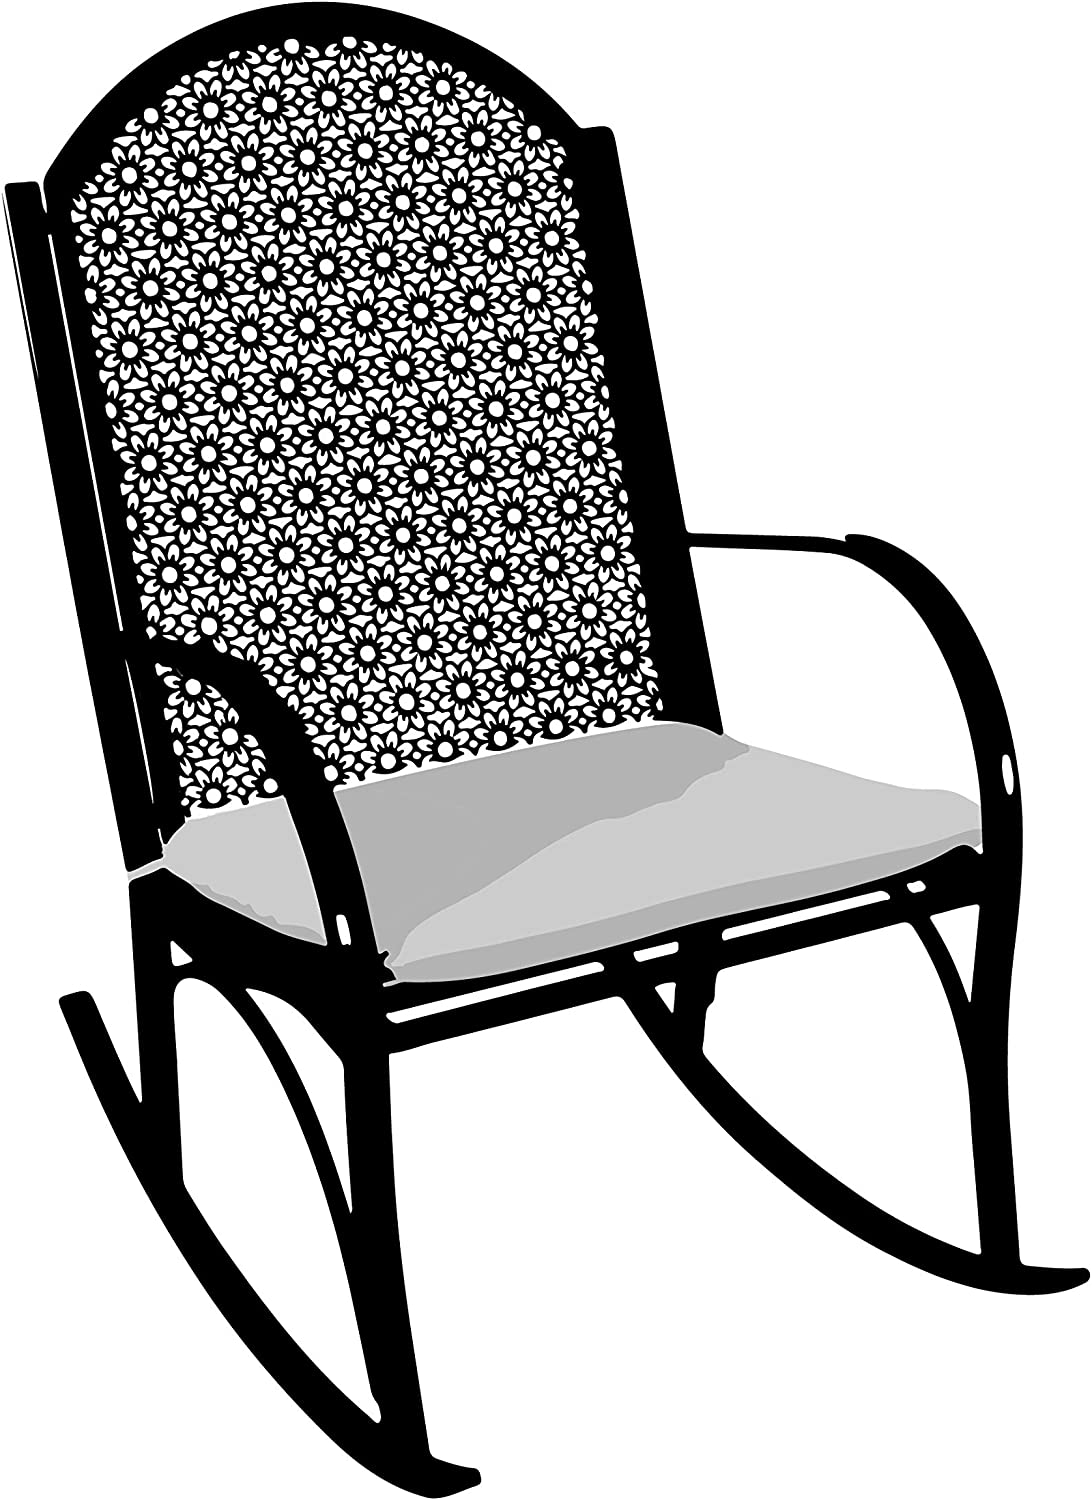 Tortuga Sturdy Coated Metal Garden Outdoor Rocking Chair